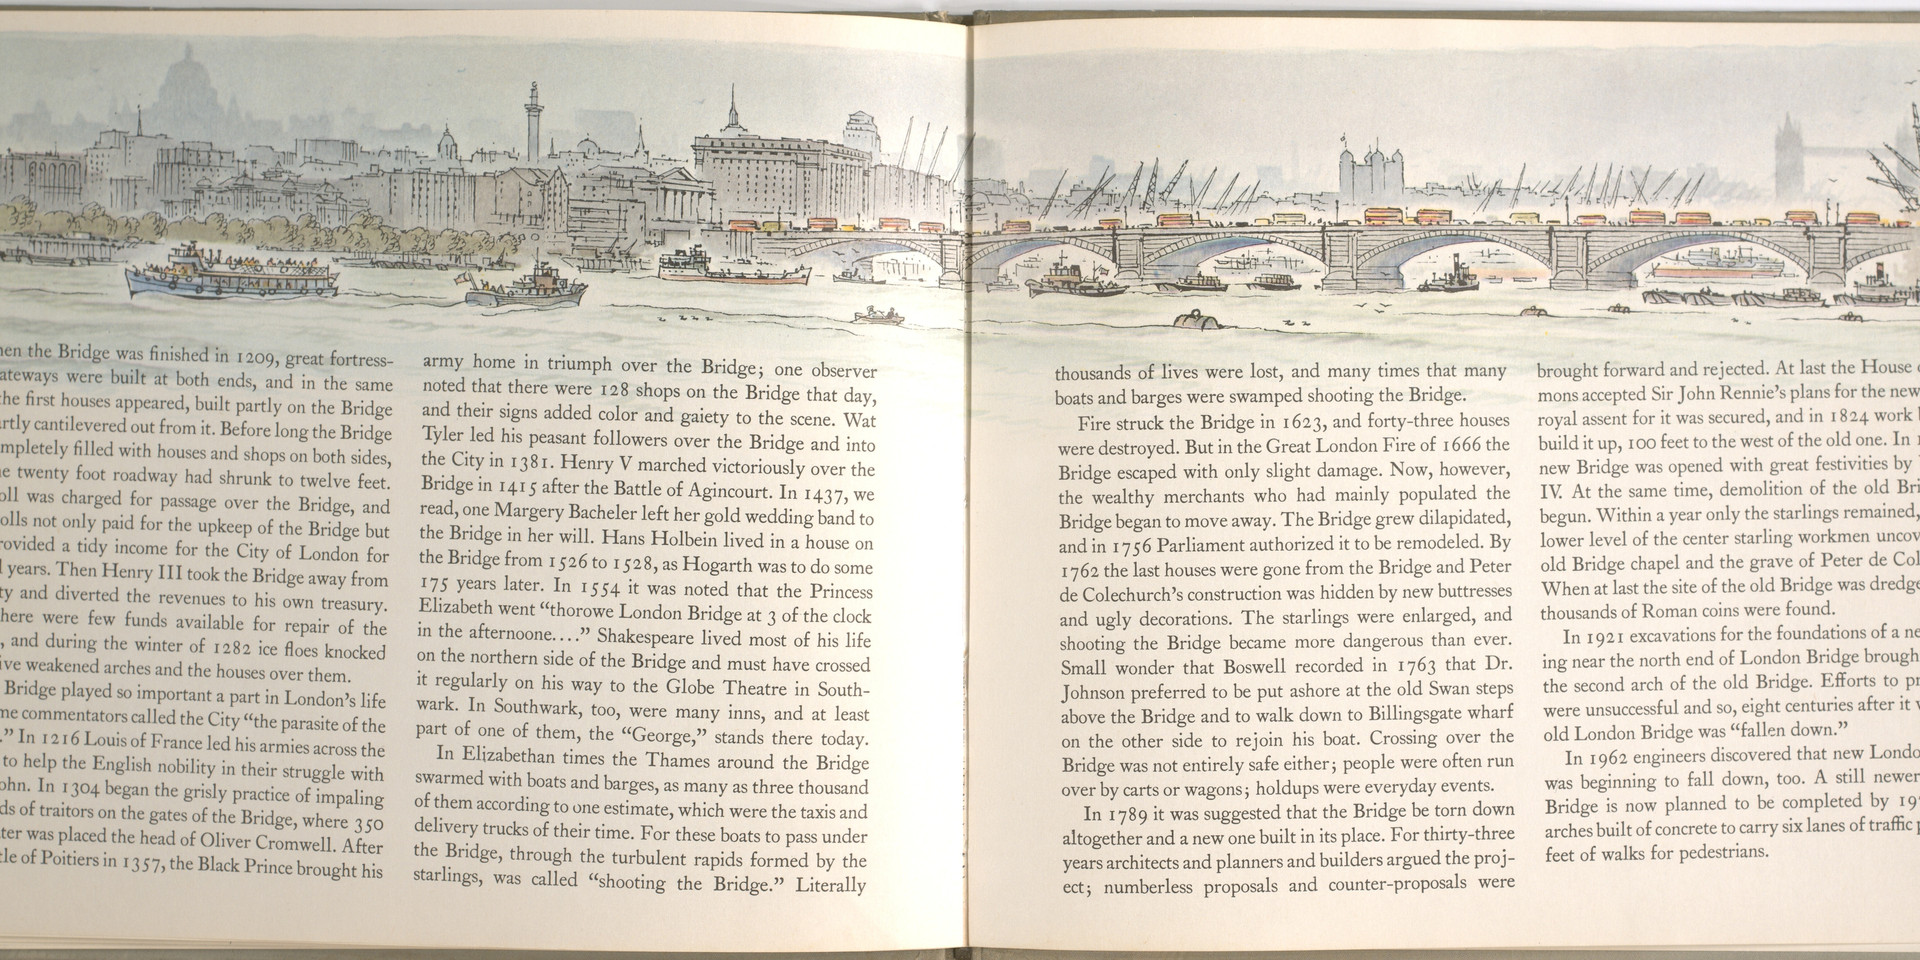 Spier, Peter. London Bridge Is Falling Down. Doubleday Books for Young Readers, 1985. p. 40-41. Ryerson University Library and Archives.